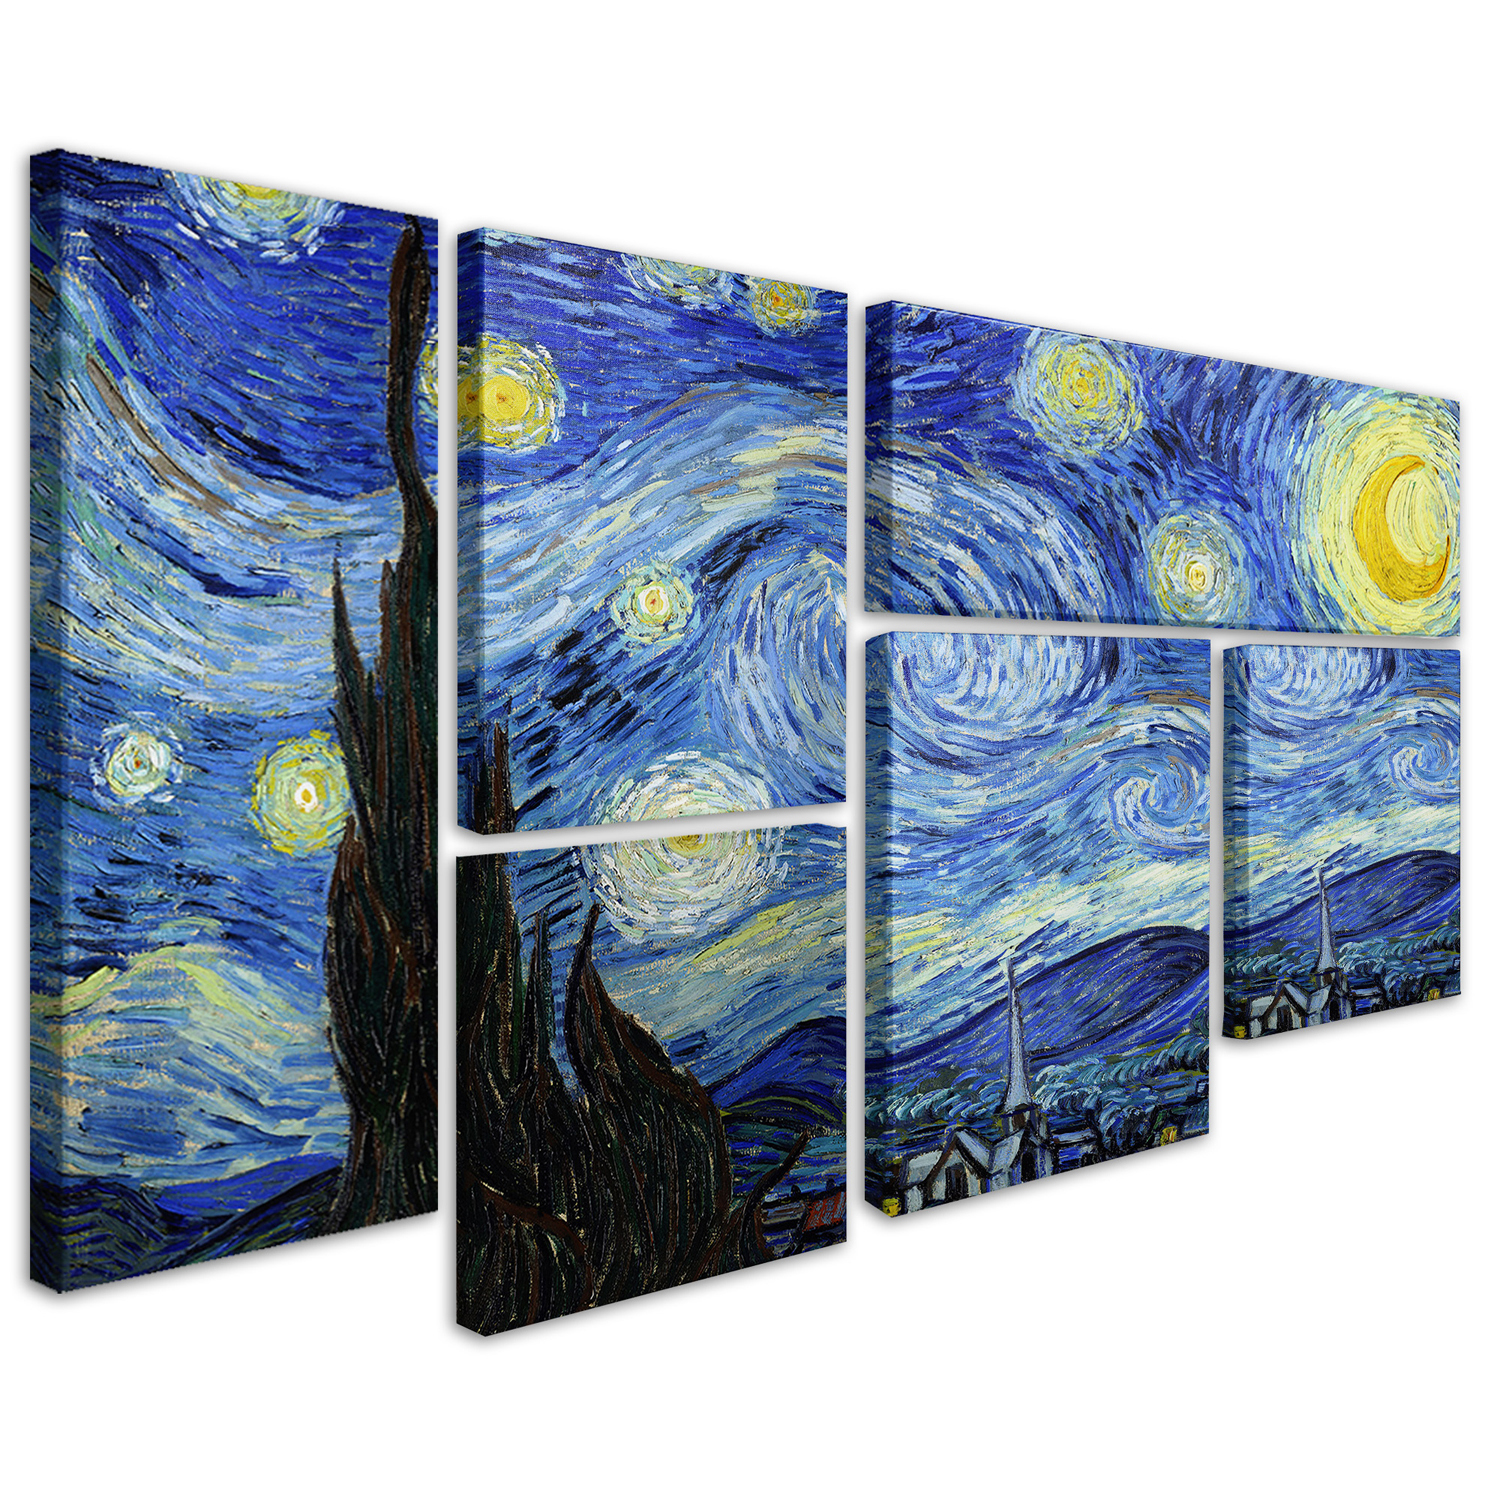 variation thumbnail of Vincent van Gogh 'Starry Night' 6-Panel Wall Art Set